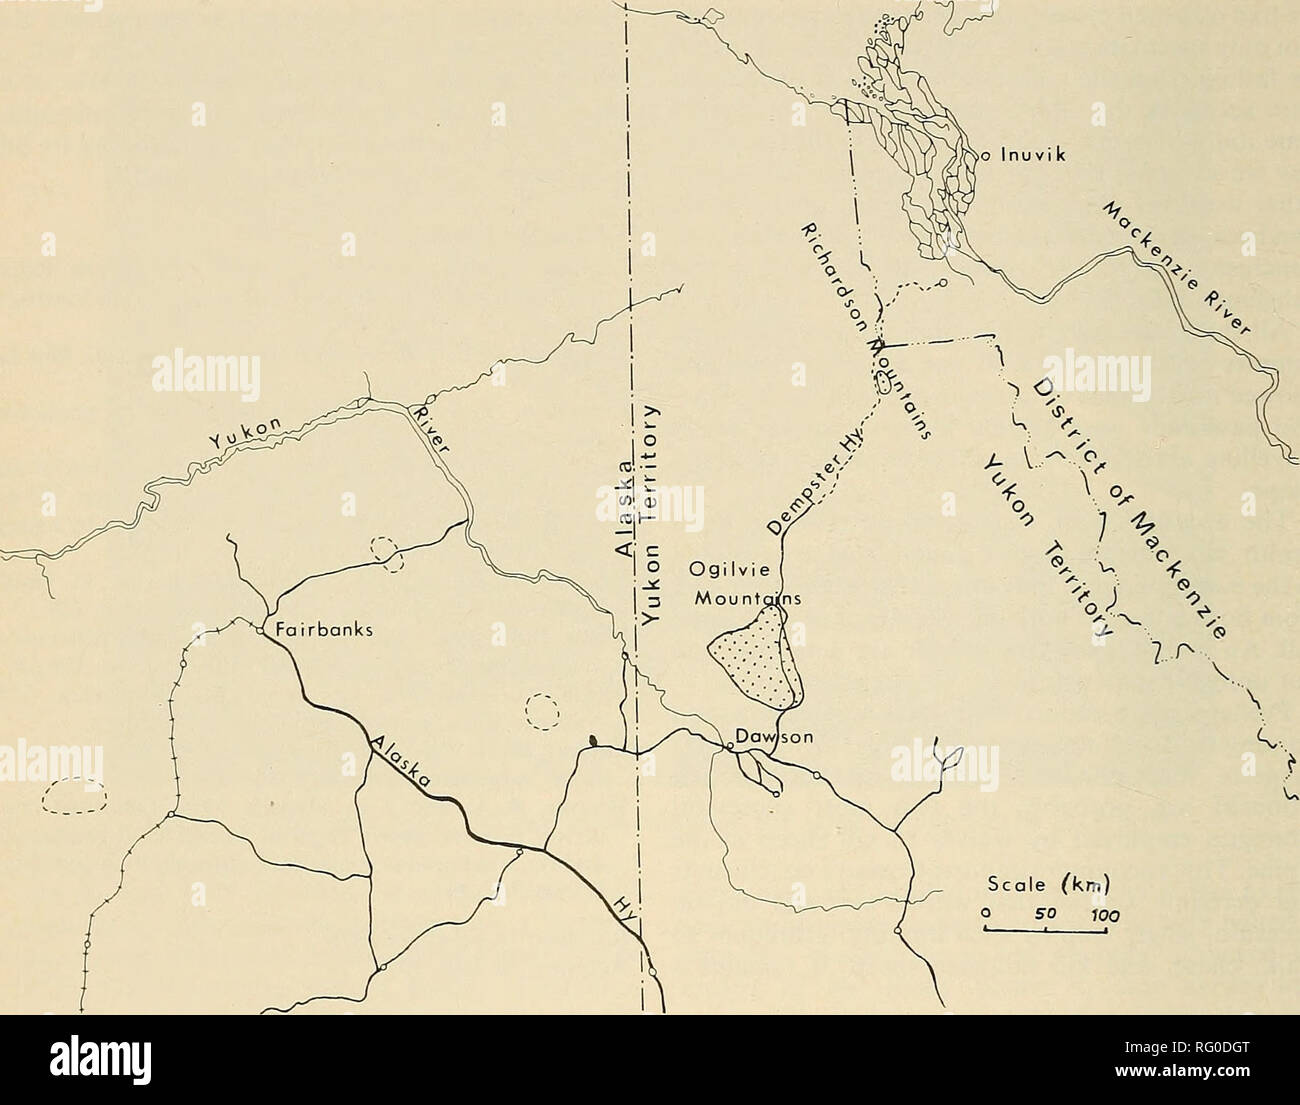 Fort Yukon Alaska Map.Ft Yukon Stock Photos Ft Yukon Stock Images Alamy